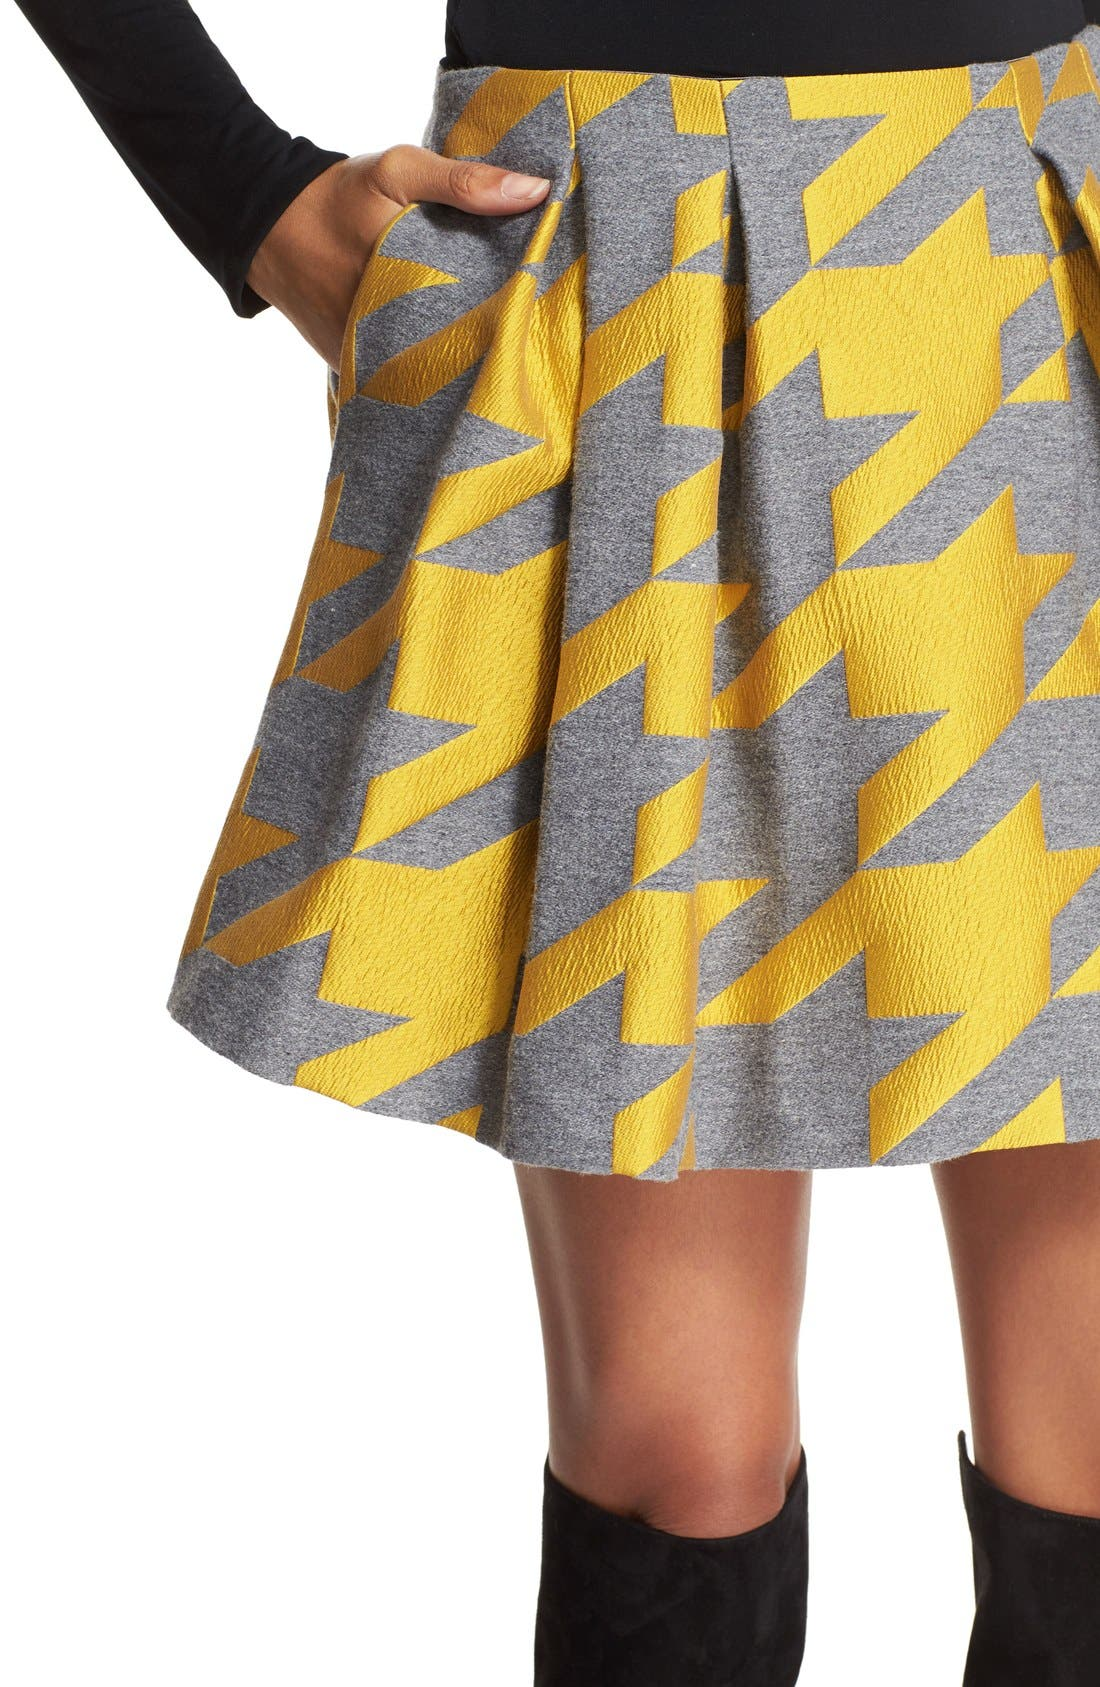 ALICE + OLIVIA,                             'Connor' Oversize Houndstooth Lampshade Skirt,                             Alternate thumbnail 4, color,                             700